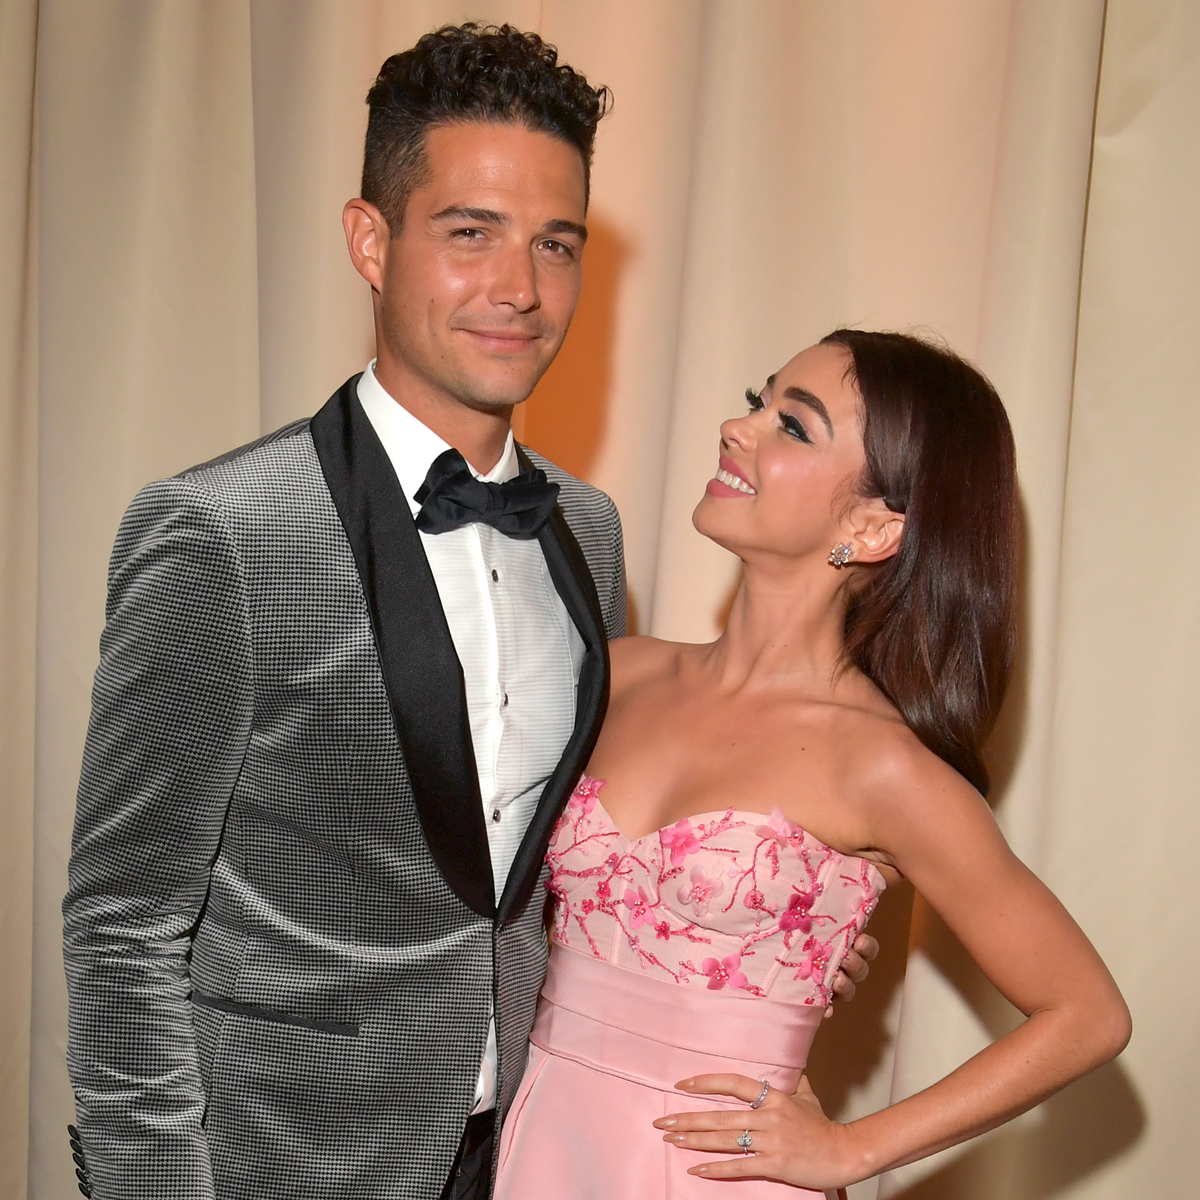 Wells Adams' 30th Birthday Tribute to Fiancée Sarah Hyland Is Hilariously Thirsty